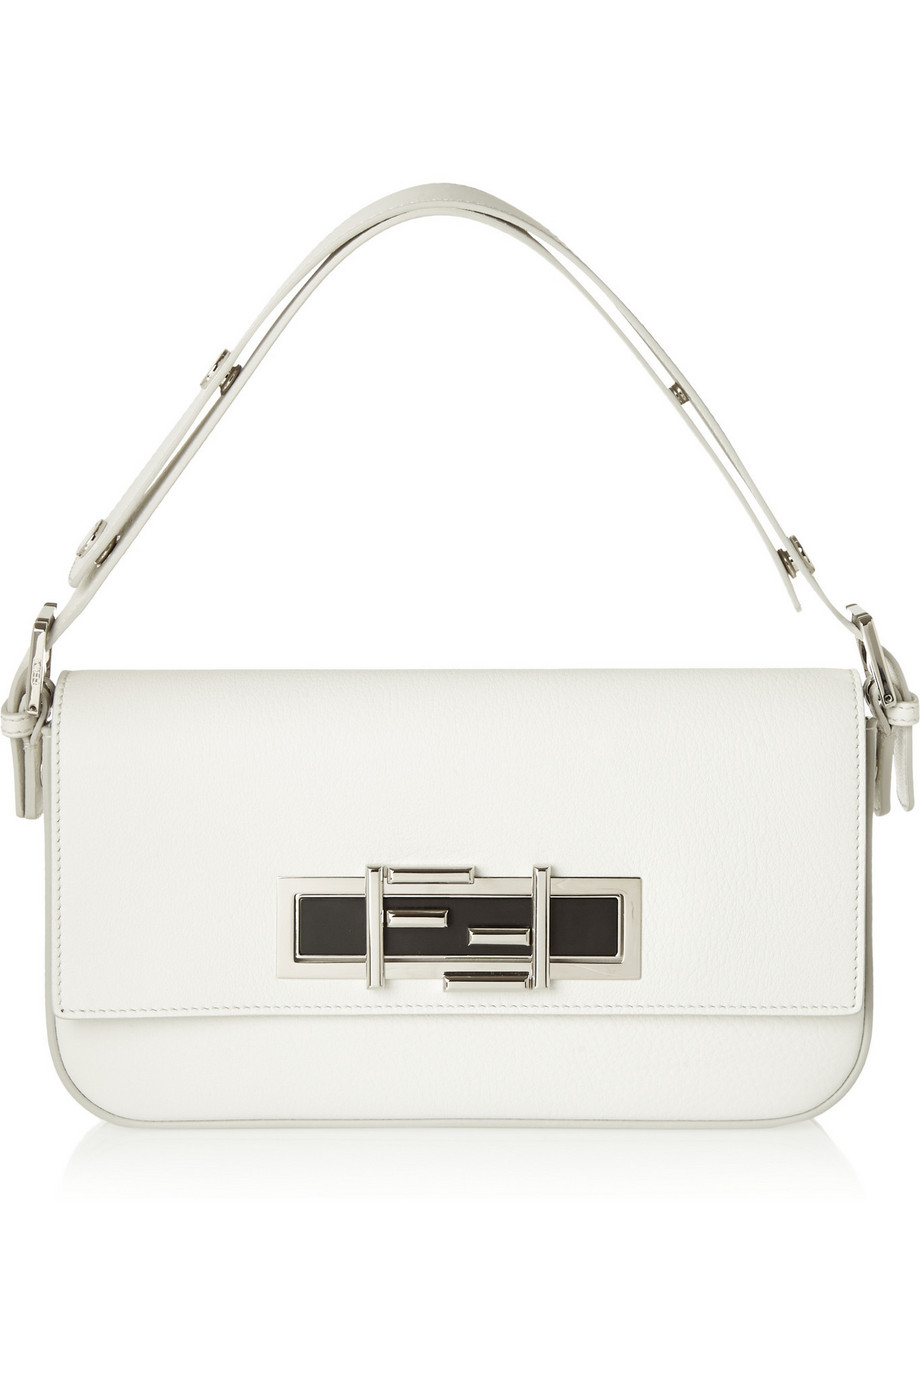 Fendi Baguette Leather Shoulder Bag, White, Women's, Size: One Size